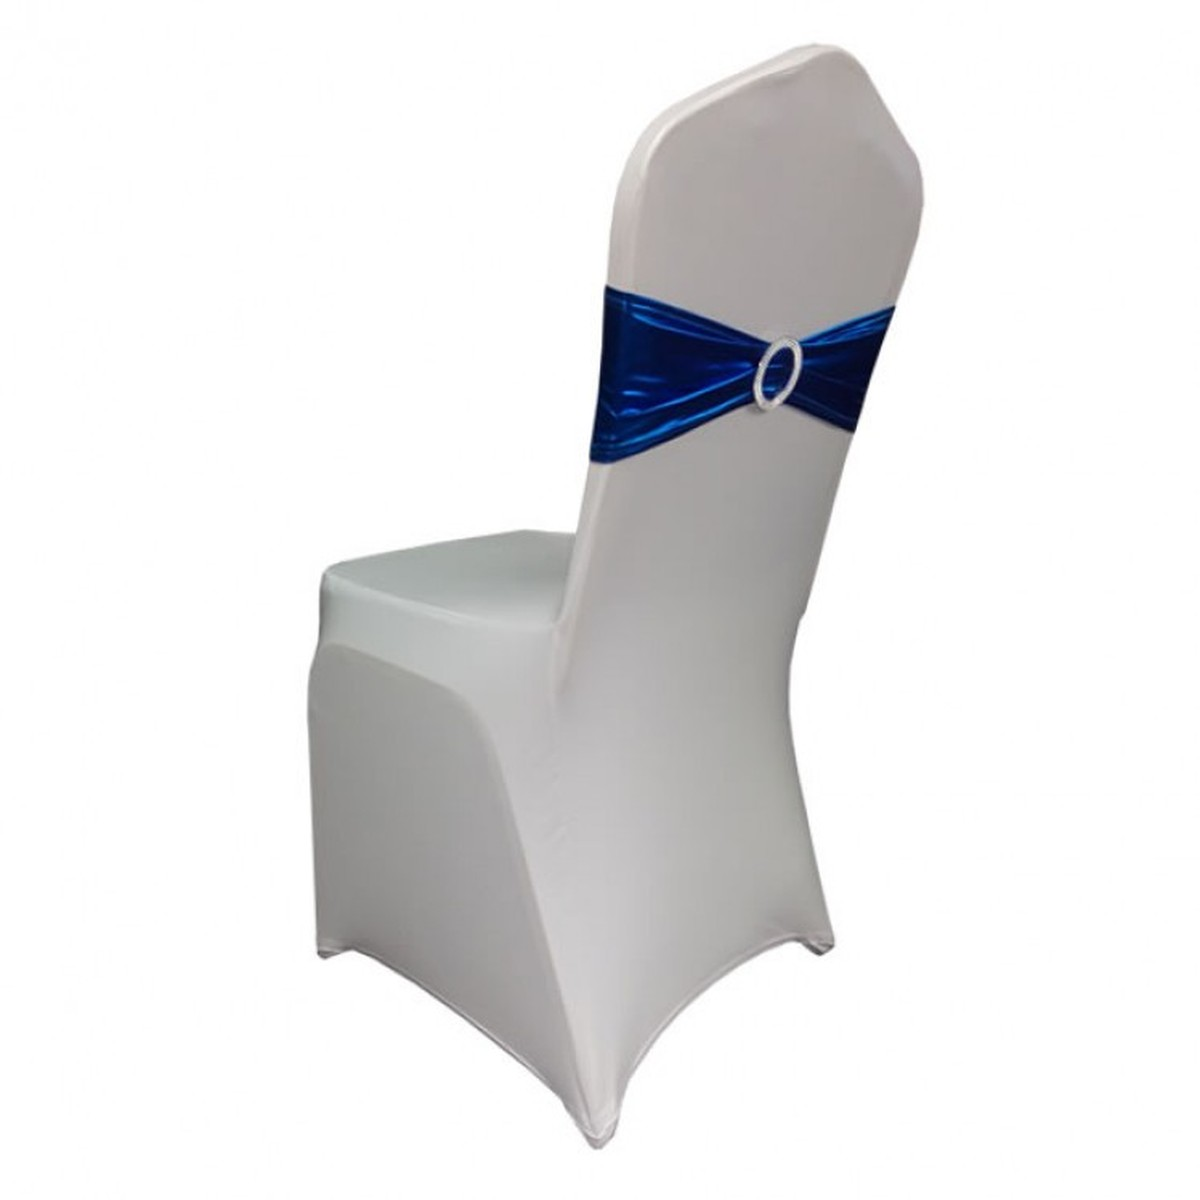 used lycra chair covers for sale outdoor furniture fire pit table and chairs secondhand lorries vans mayfair